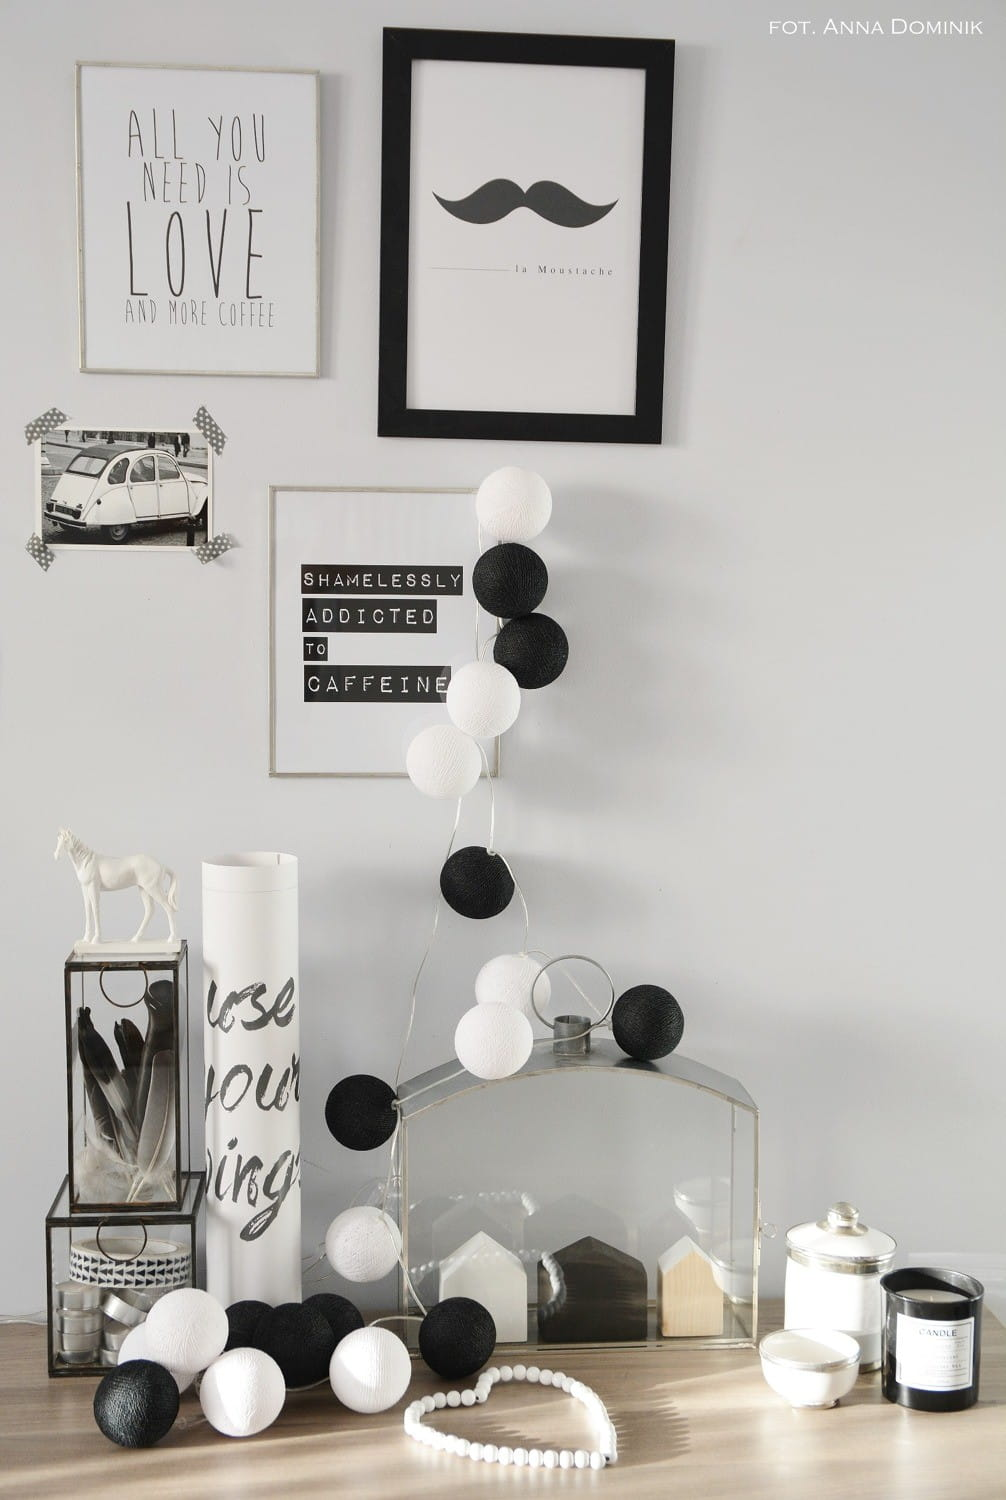 20 kul Black & White Cotton Ball Lights